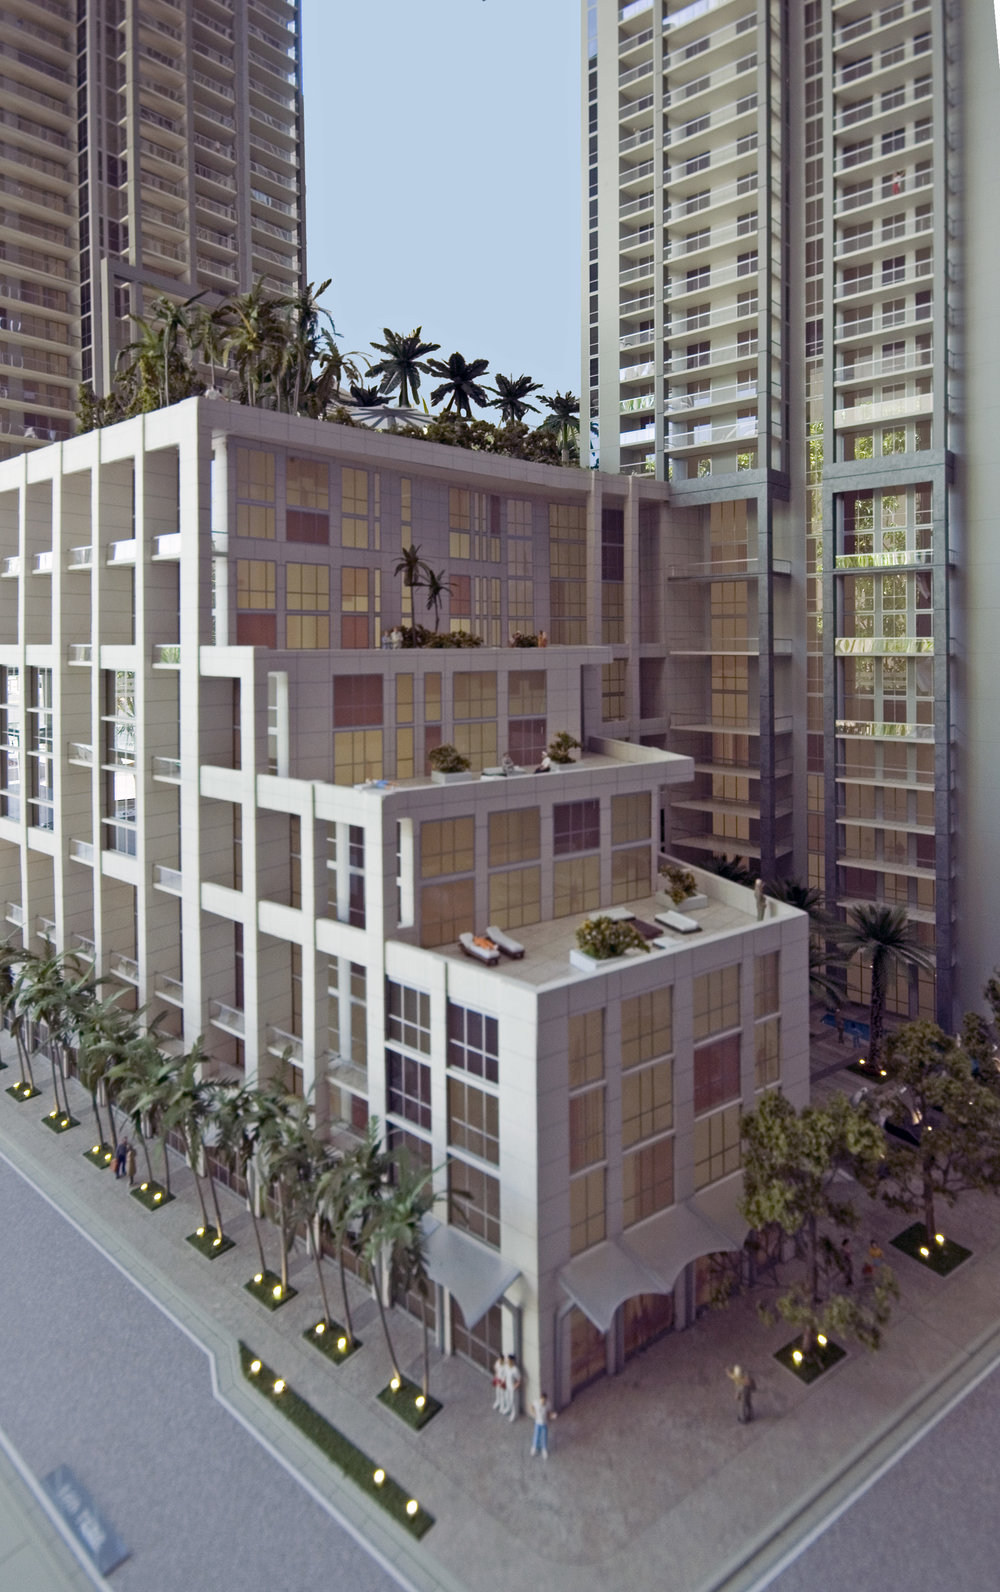 Capital at Brickell | Architect: Fullerton Diaz Architects